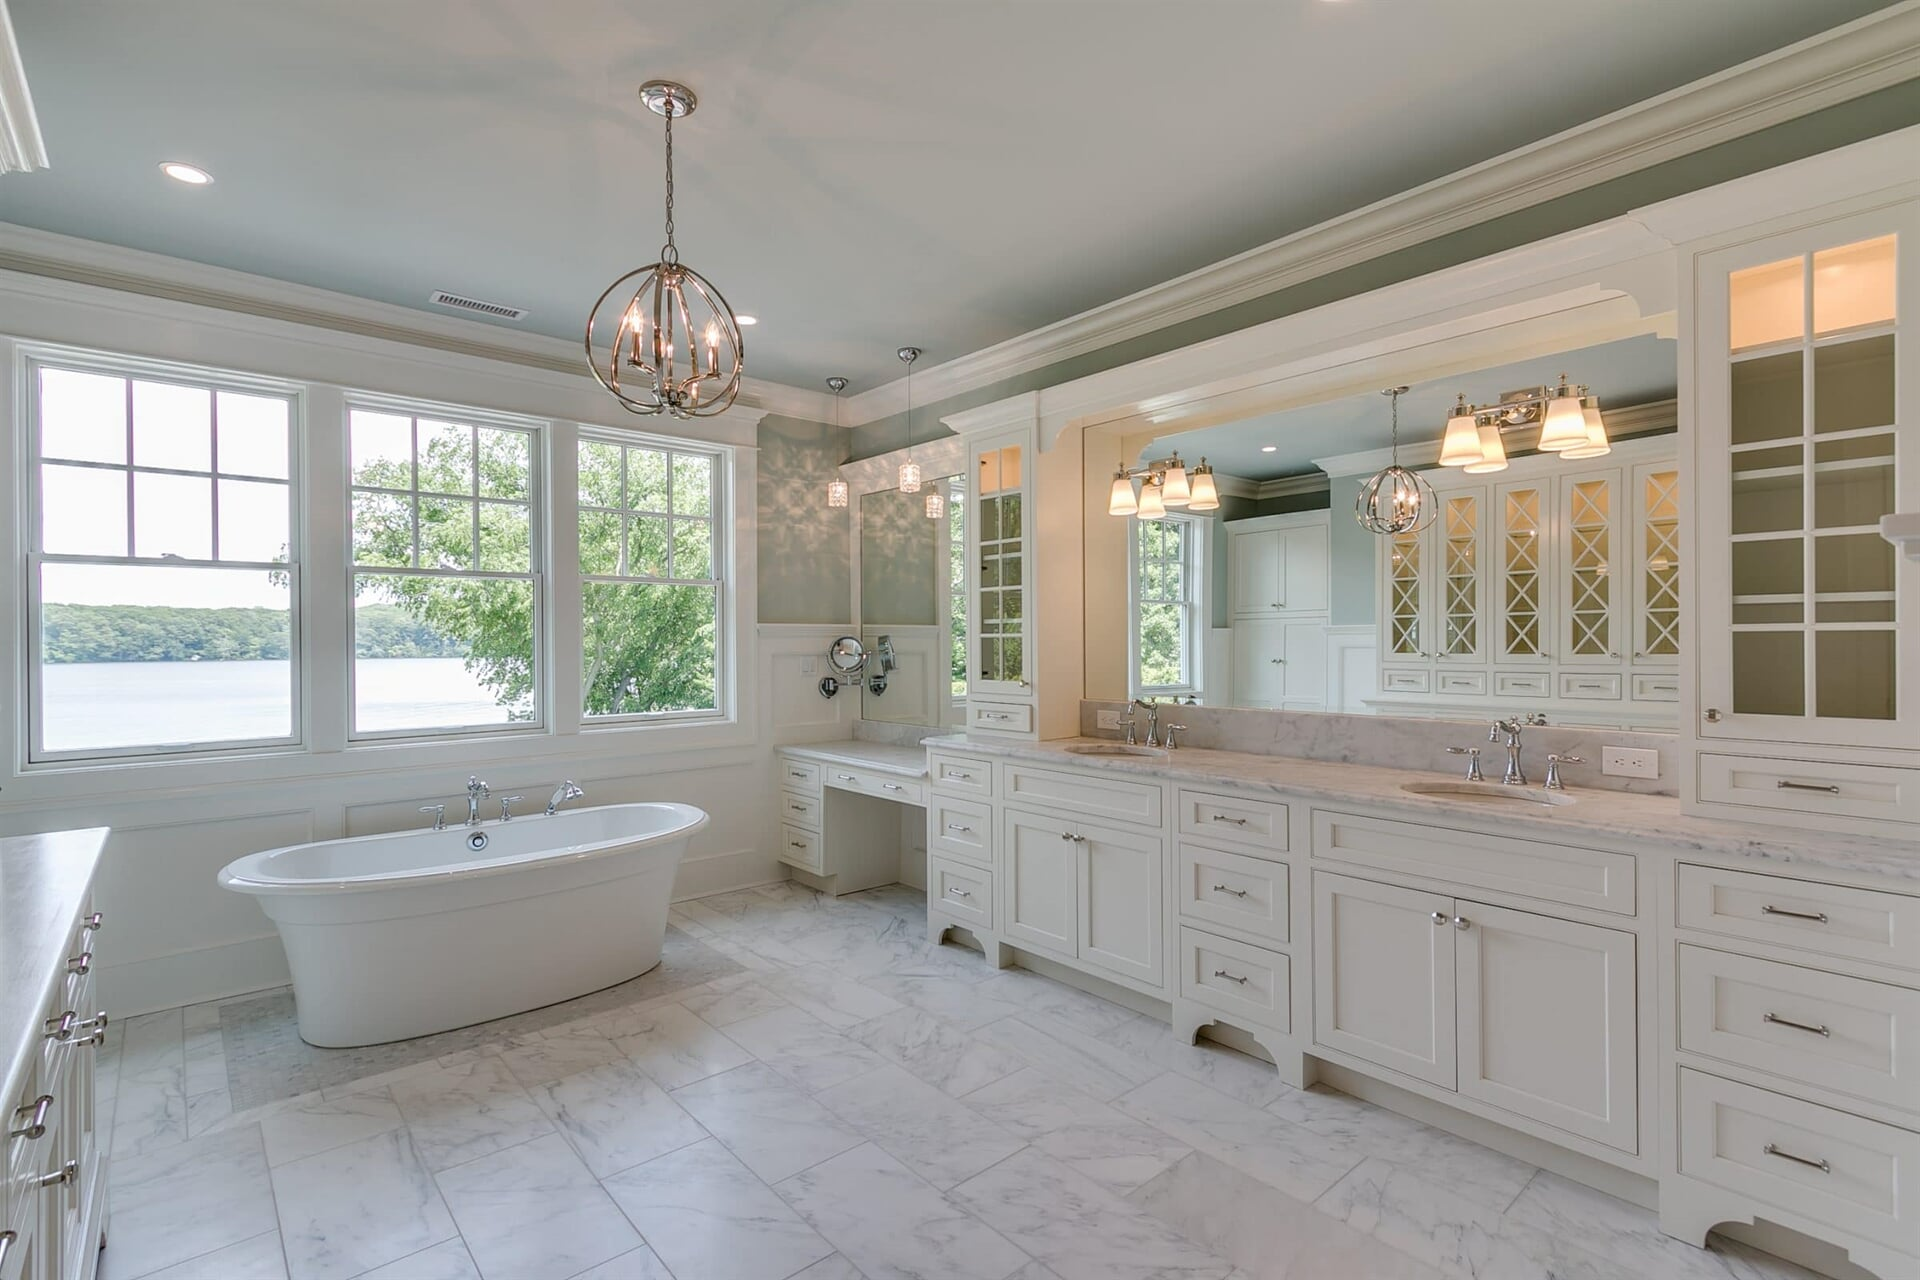 Large bathroom remodel in Doylestown, PA from Interior Trend